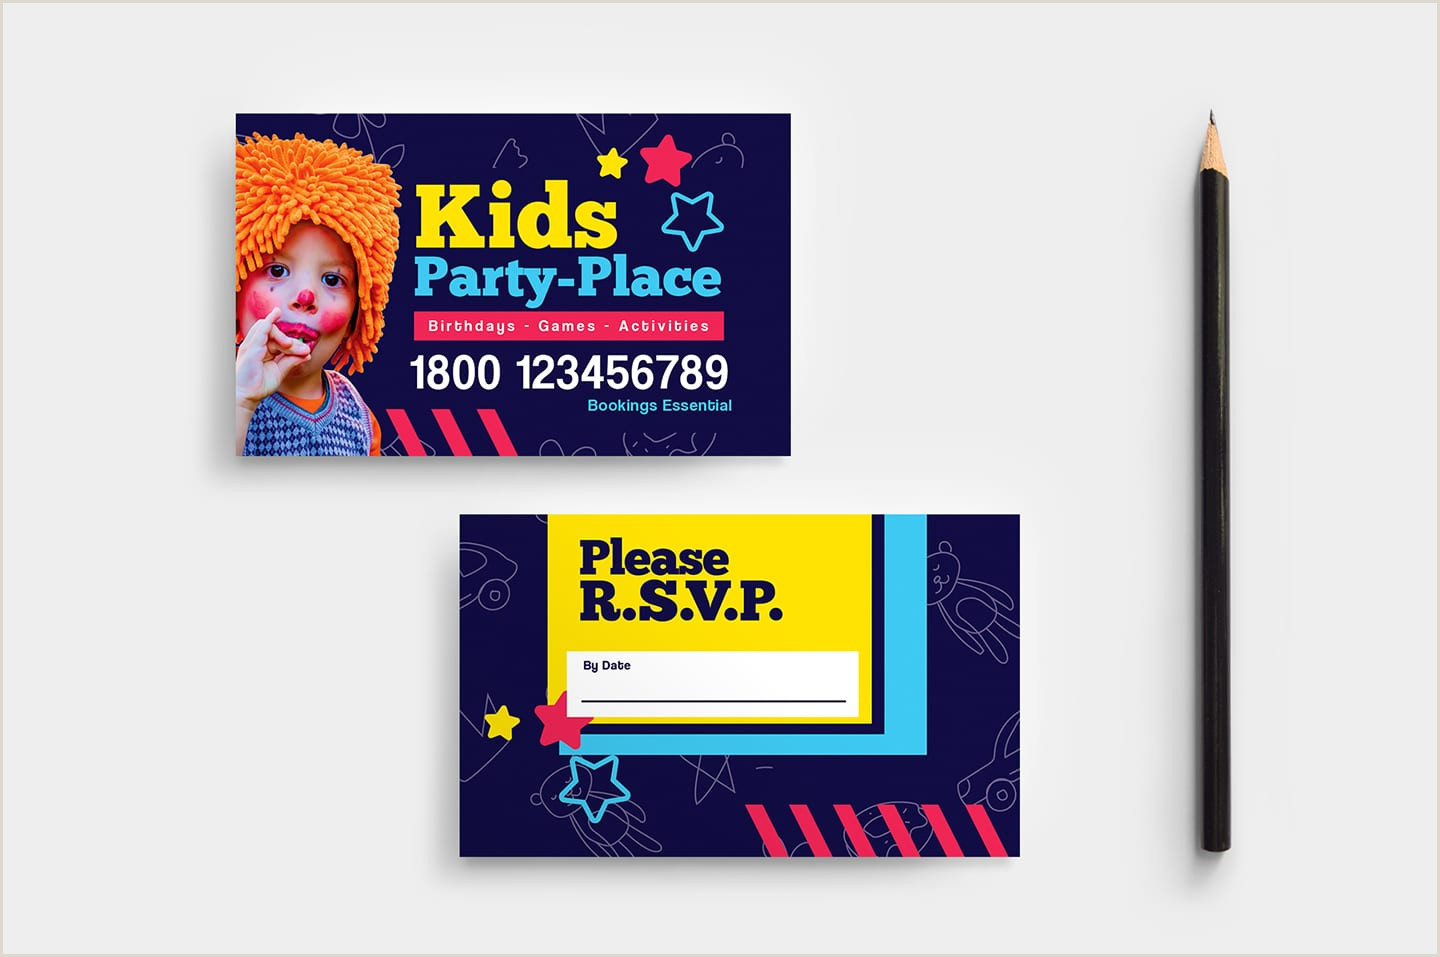 Graphic Design Best Business Cards For Children Company Kid S Party Business Card Template In Psd Ai & Vector